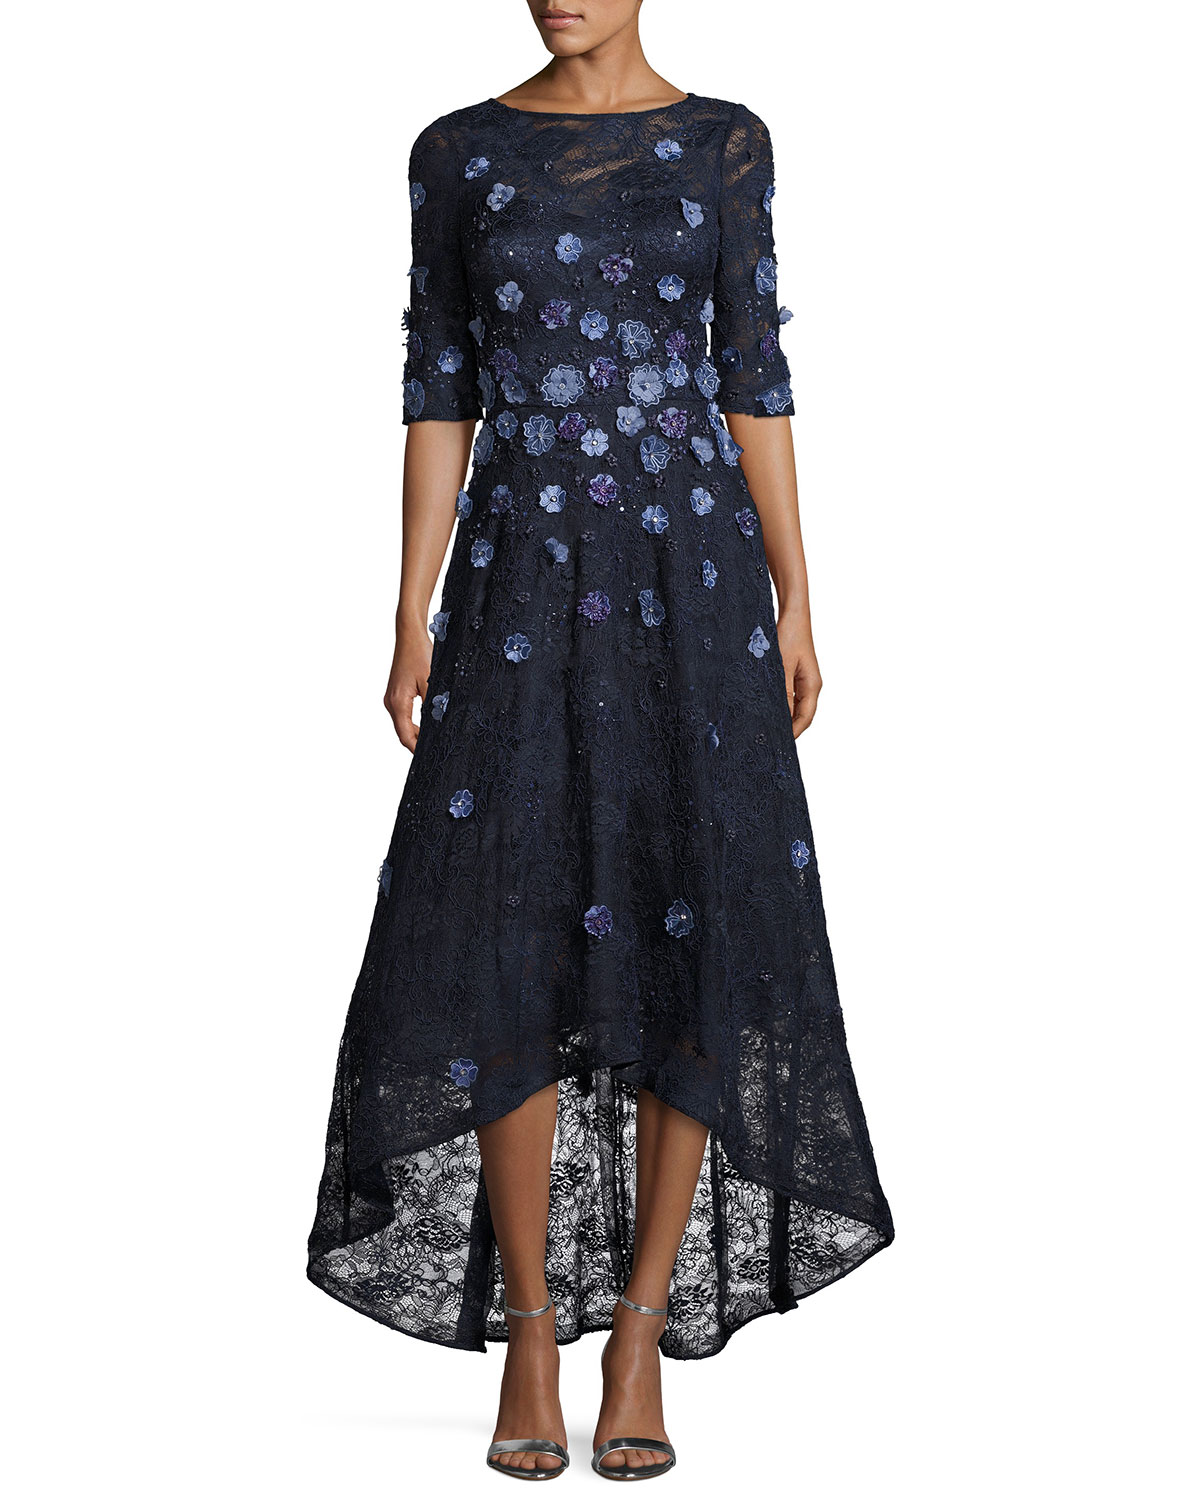 8e2043725ea Rickie Freeman for Teri Jon Floral Lace High-Low Cocktail Dress ...